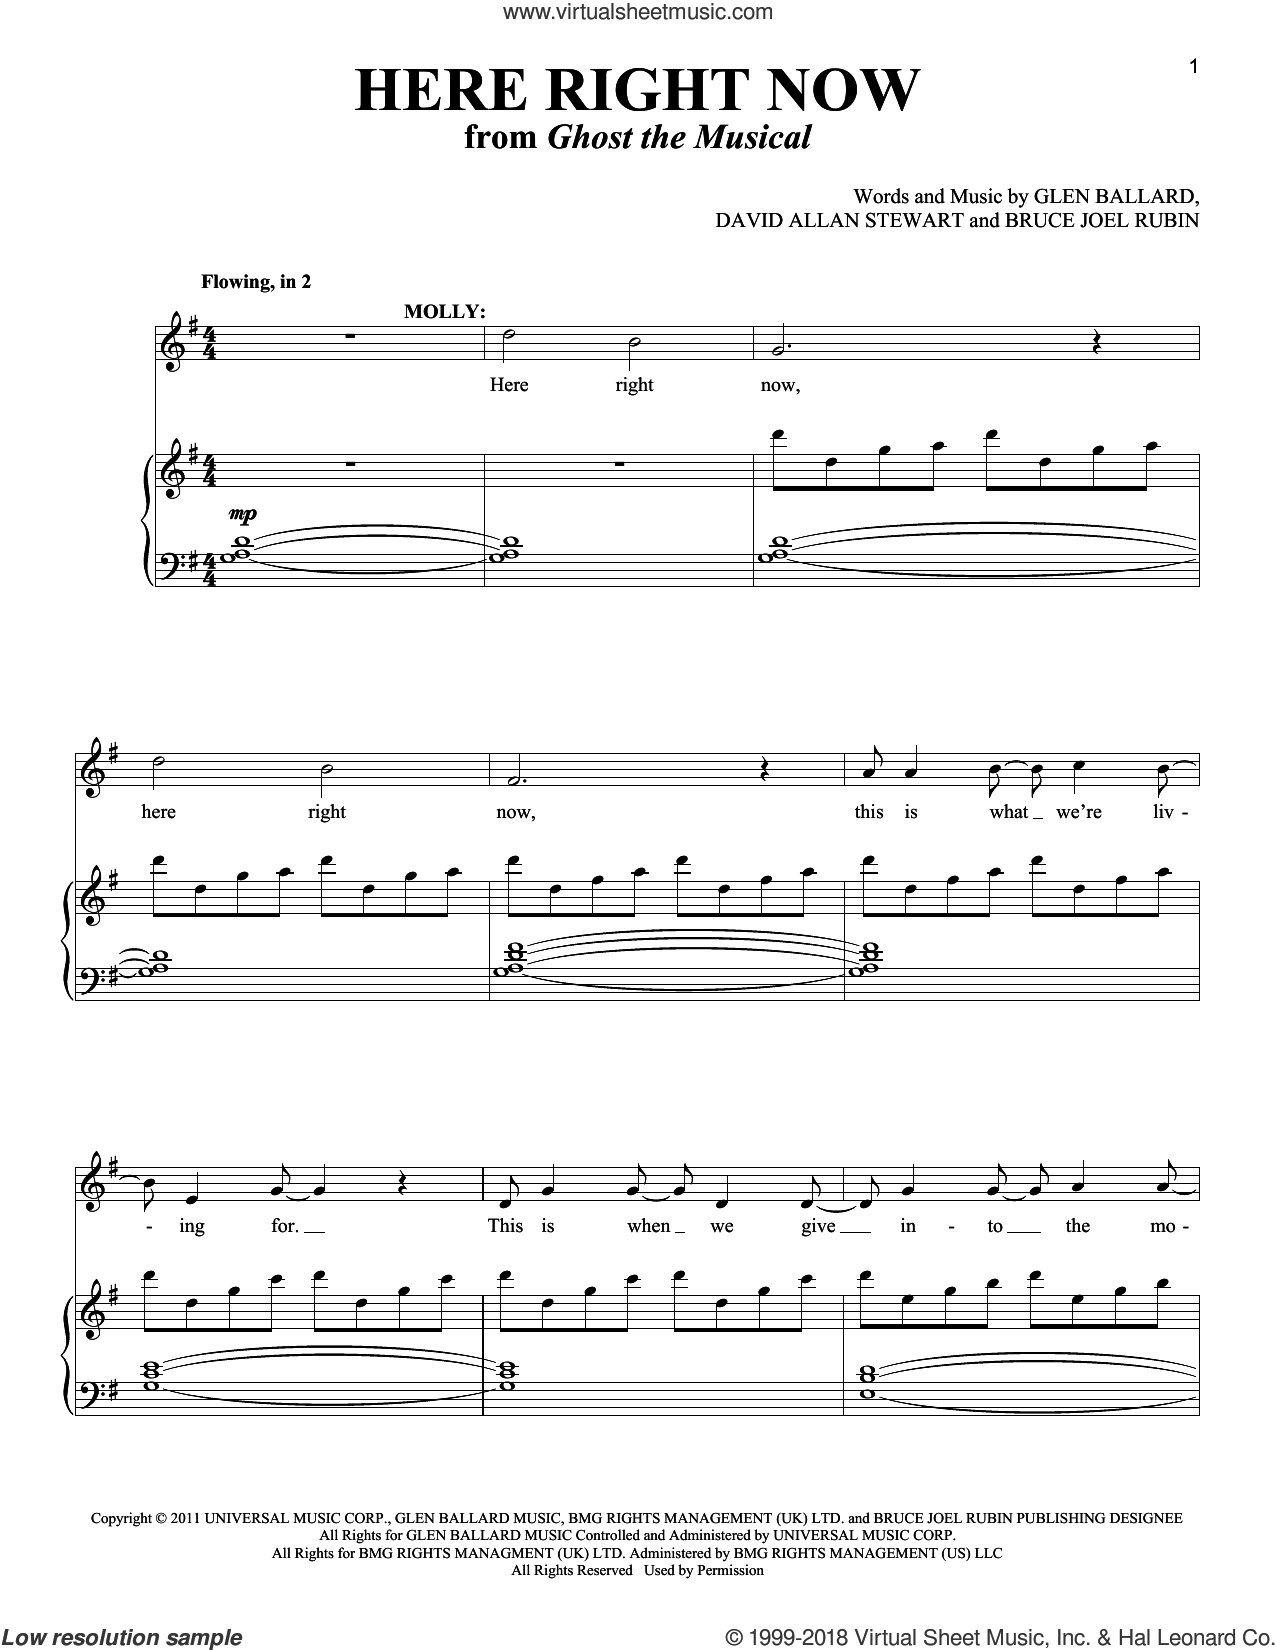 Here Right Now sheet music for two voices and piano by Glen Ballard, Richard Walters, Bruce Joel Rubin and David Allan Stewart, intermediate skill level